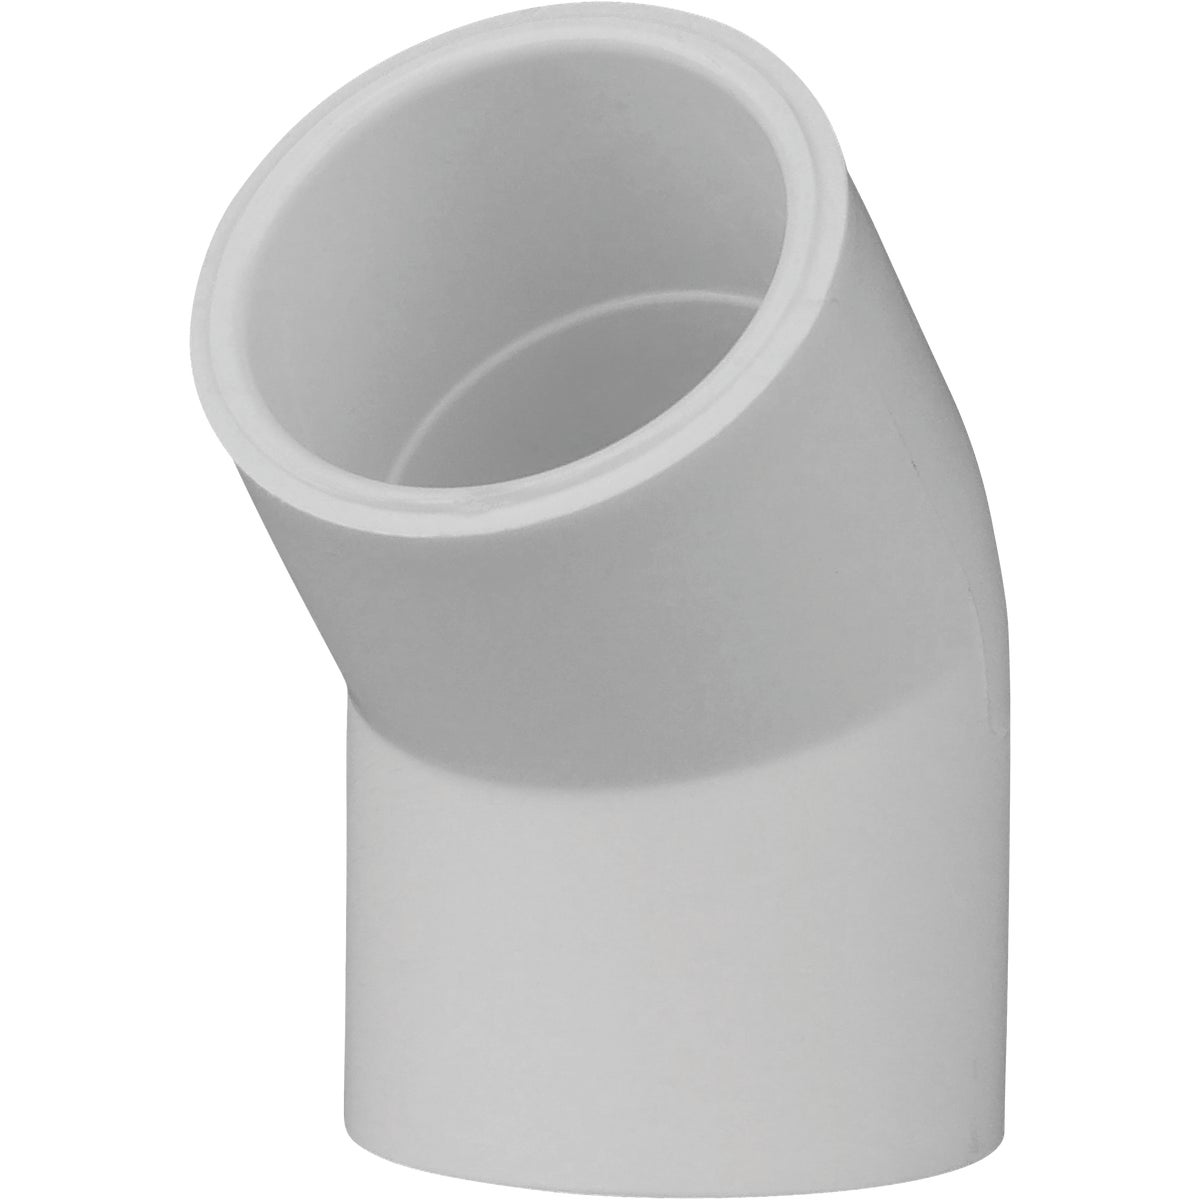 "3/4"" PVC SXS 45D ELBOW - 30607 by Genova Inc"